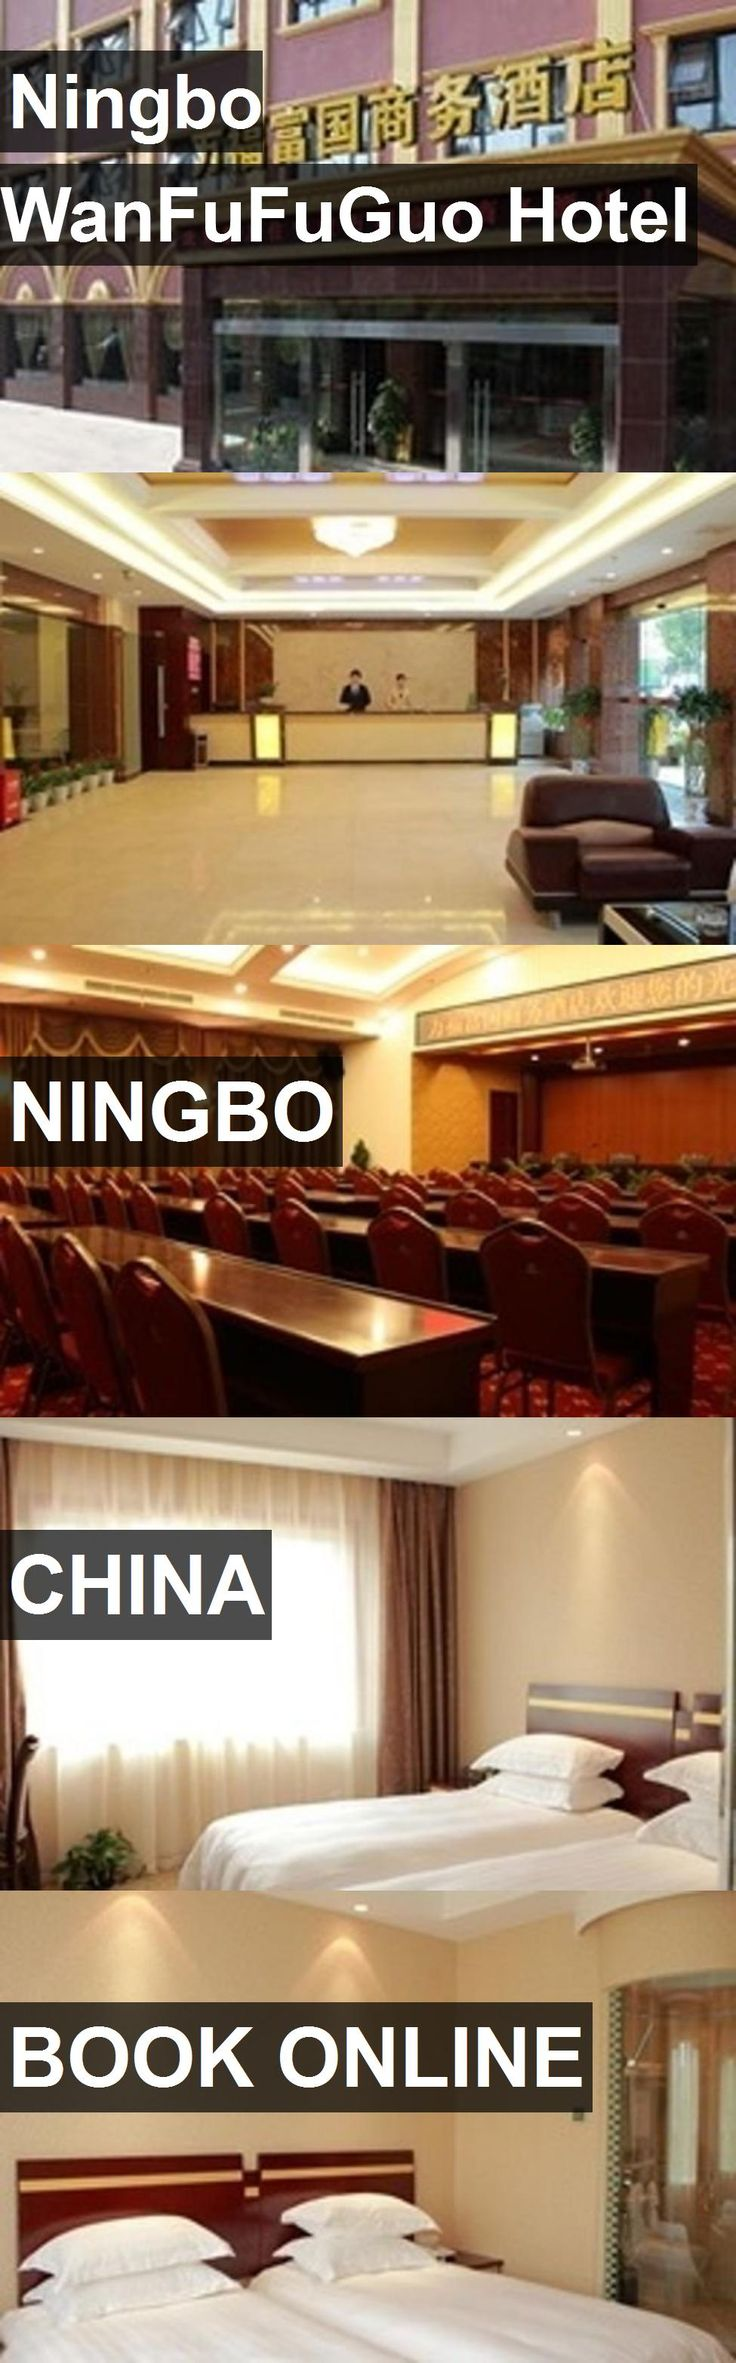 Ningbo WanFuFuGuo Hotel in Ningbo, China. For more information, photos, reviews and best prices please follow the link. #China #Ningbo #travel #vacation #hotel